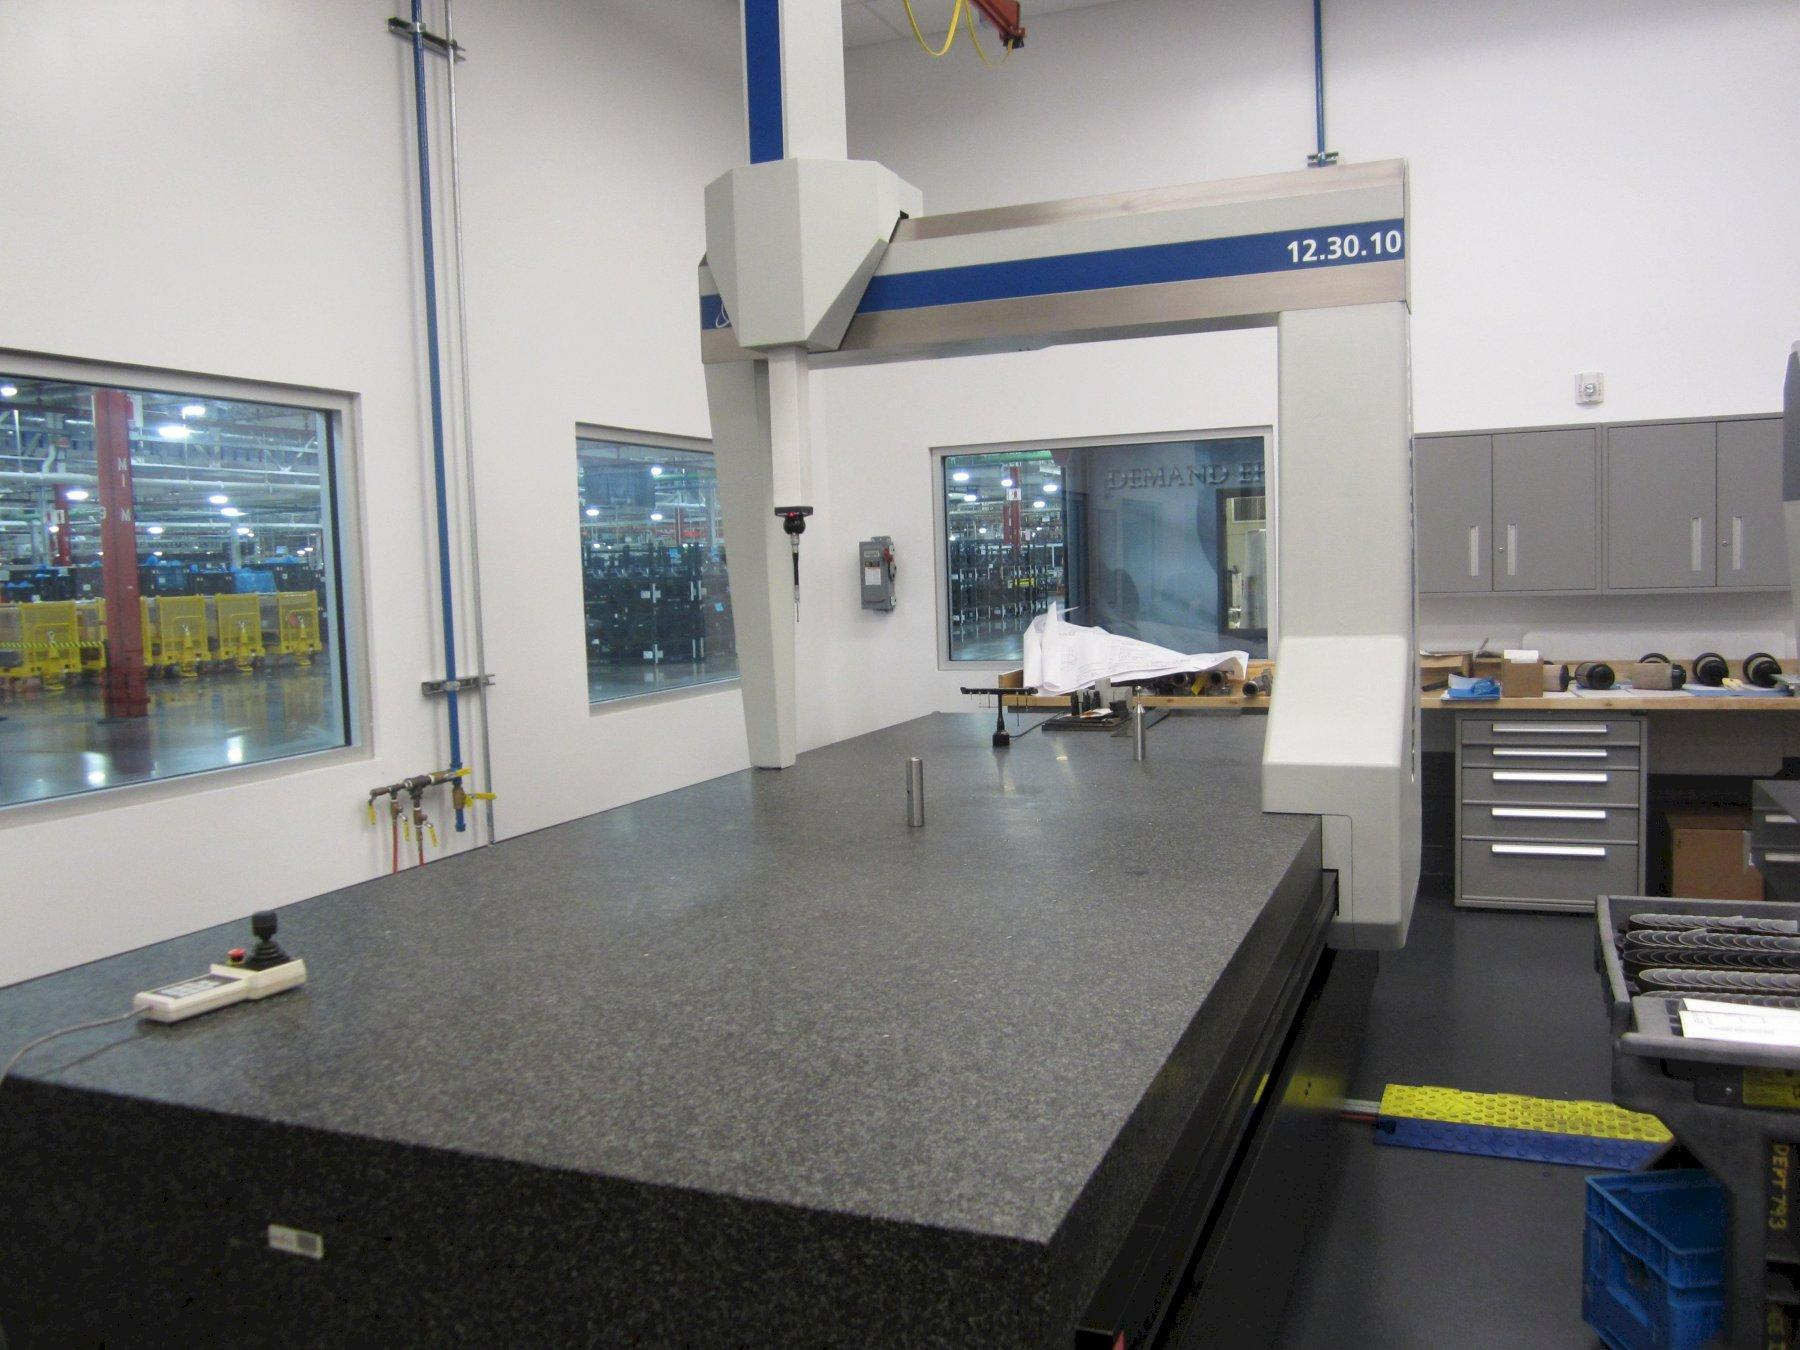 Sheffield Endeavor FlexScan Series 12.30.10  Coordinate Measuring Machine